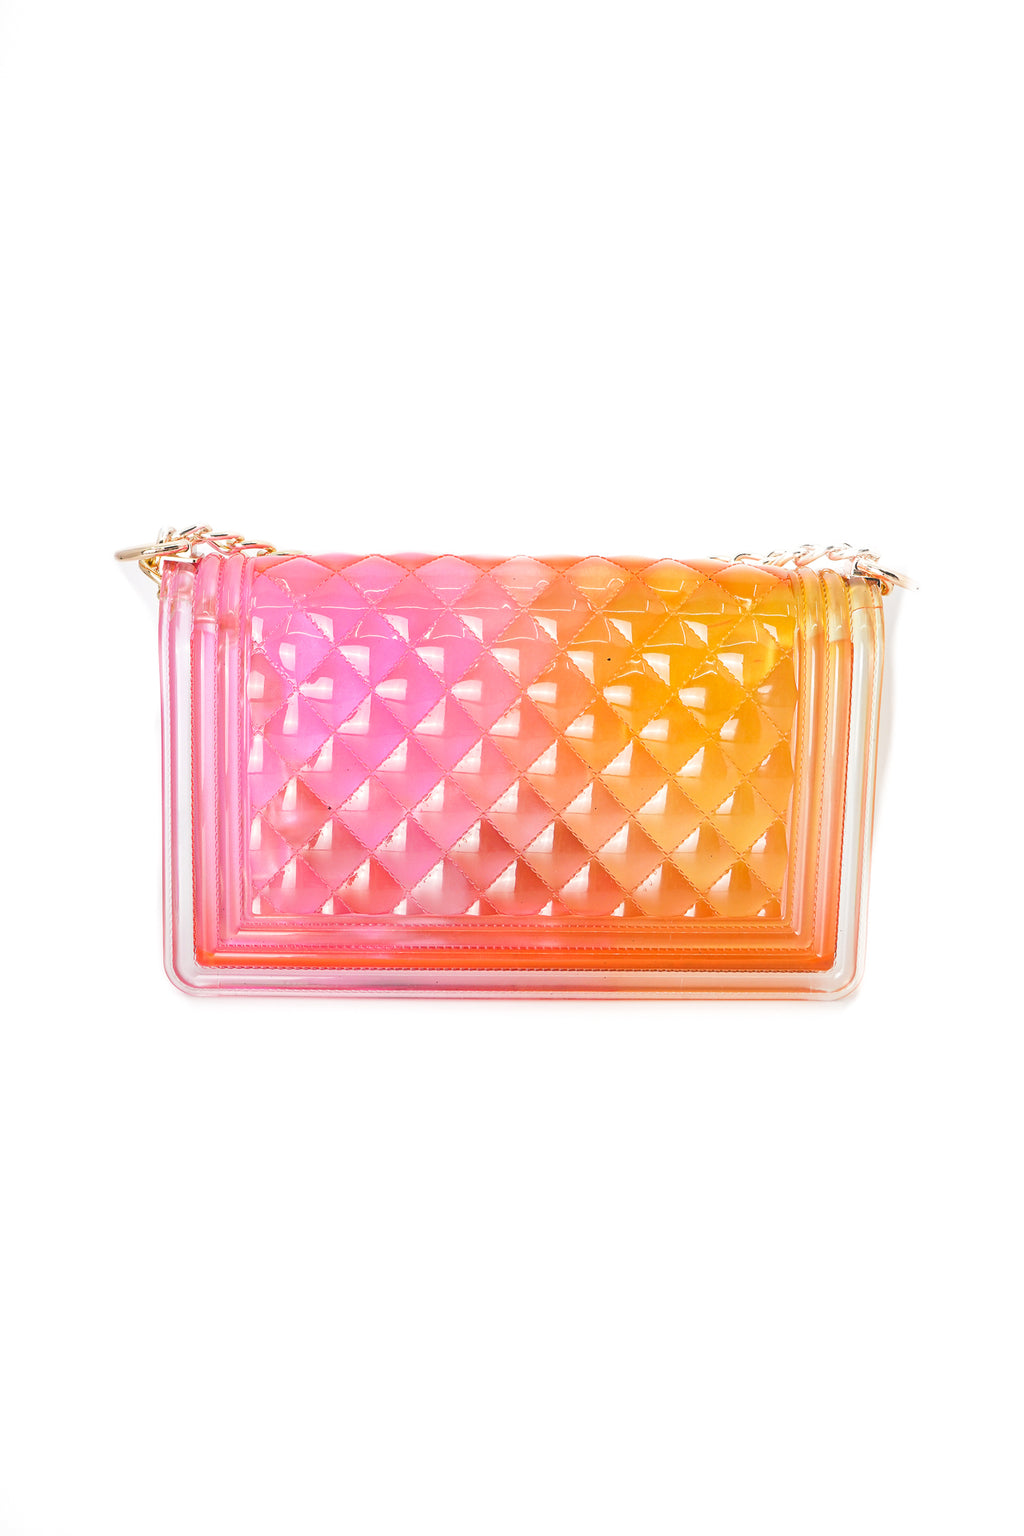 Two Tone Orange and Pink Clear Color Quilted Jelly Crossbody Shoulder Bag with Metal Chain Strap